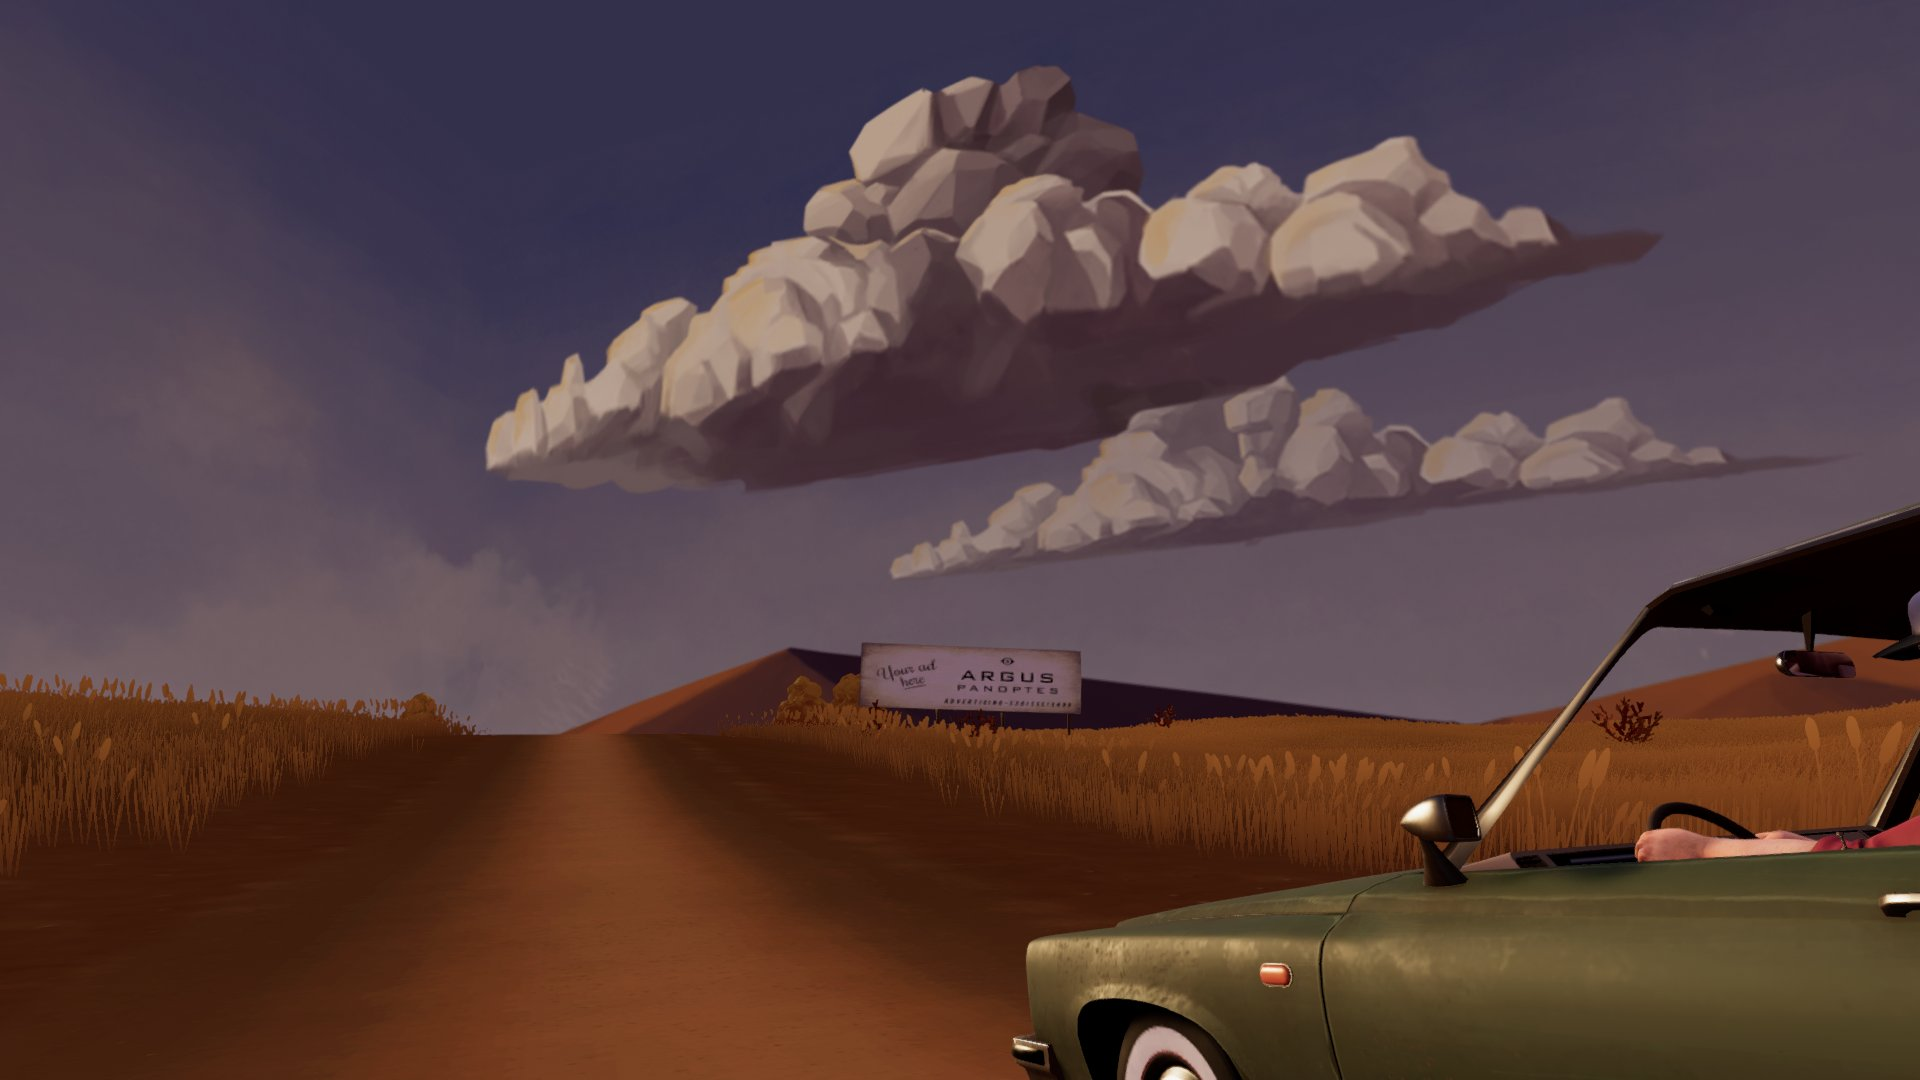 A rolling, cloud-covered landscape with your ride in the foreground.